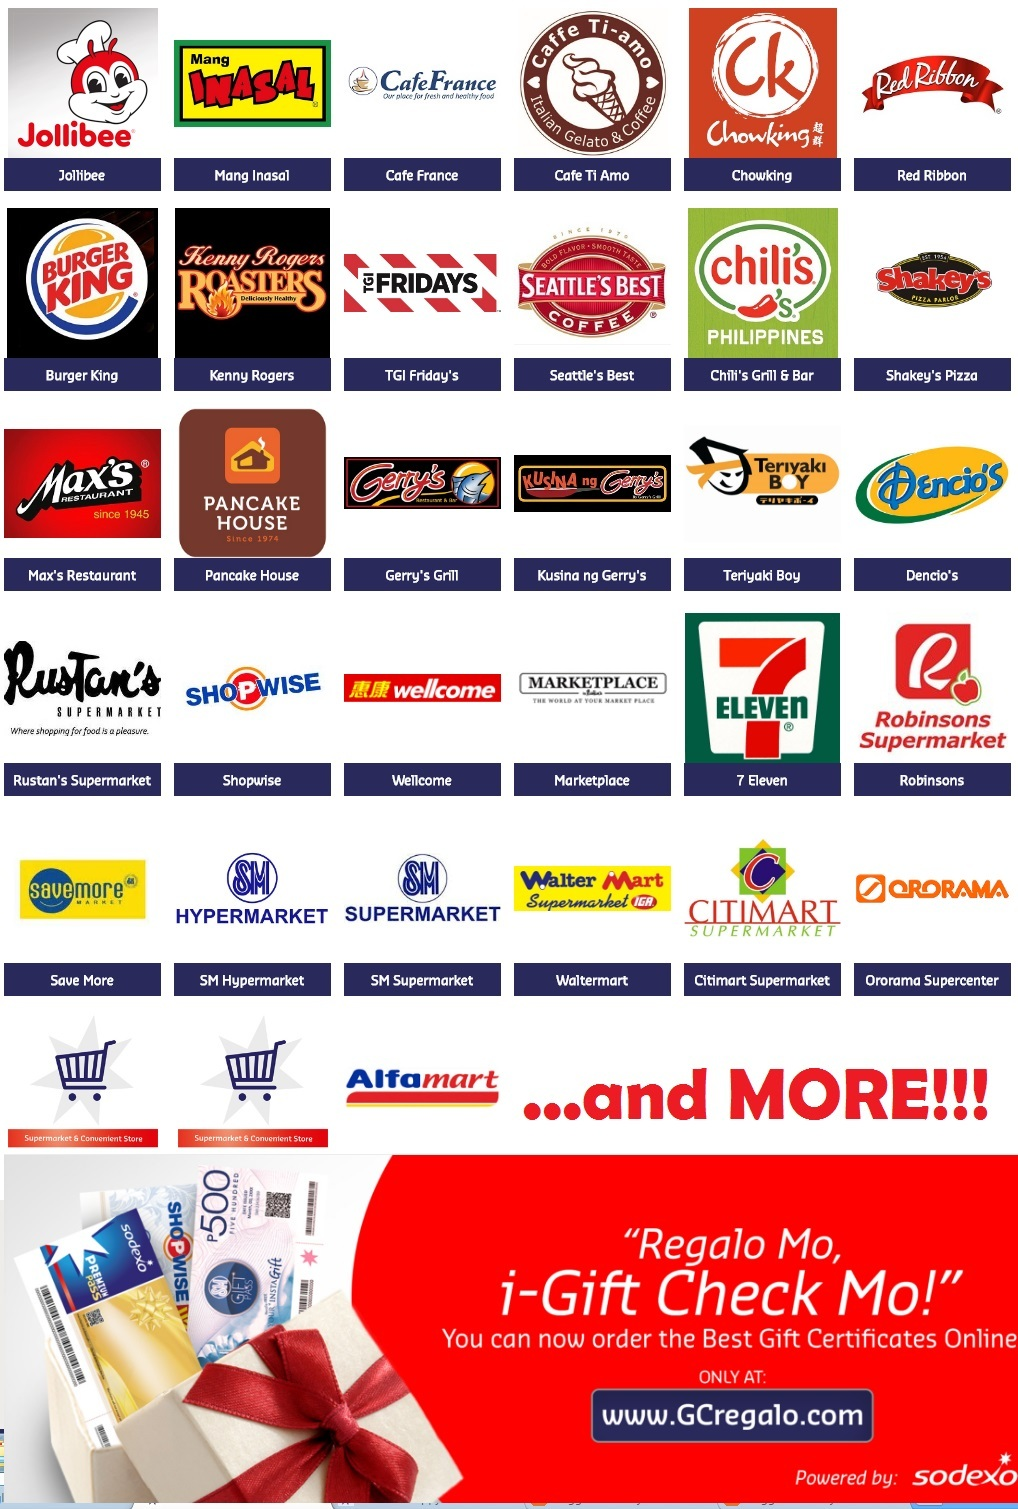 Costco Auto Program >> Sodexo Gift Certificate Philippines - Gift Ftempo